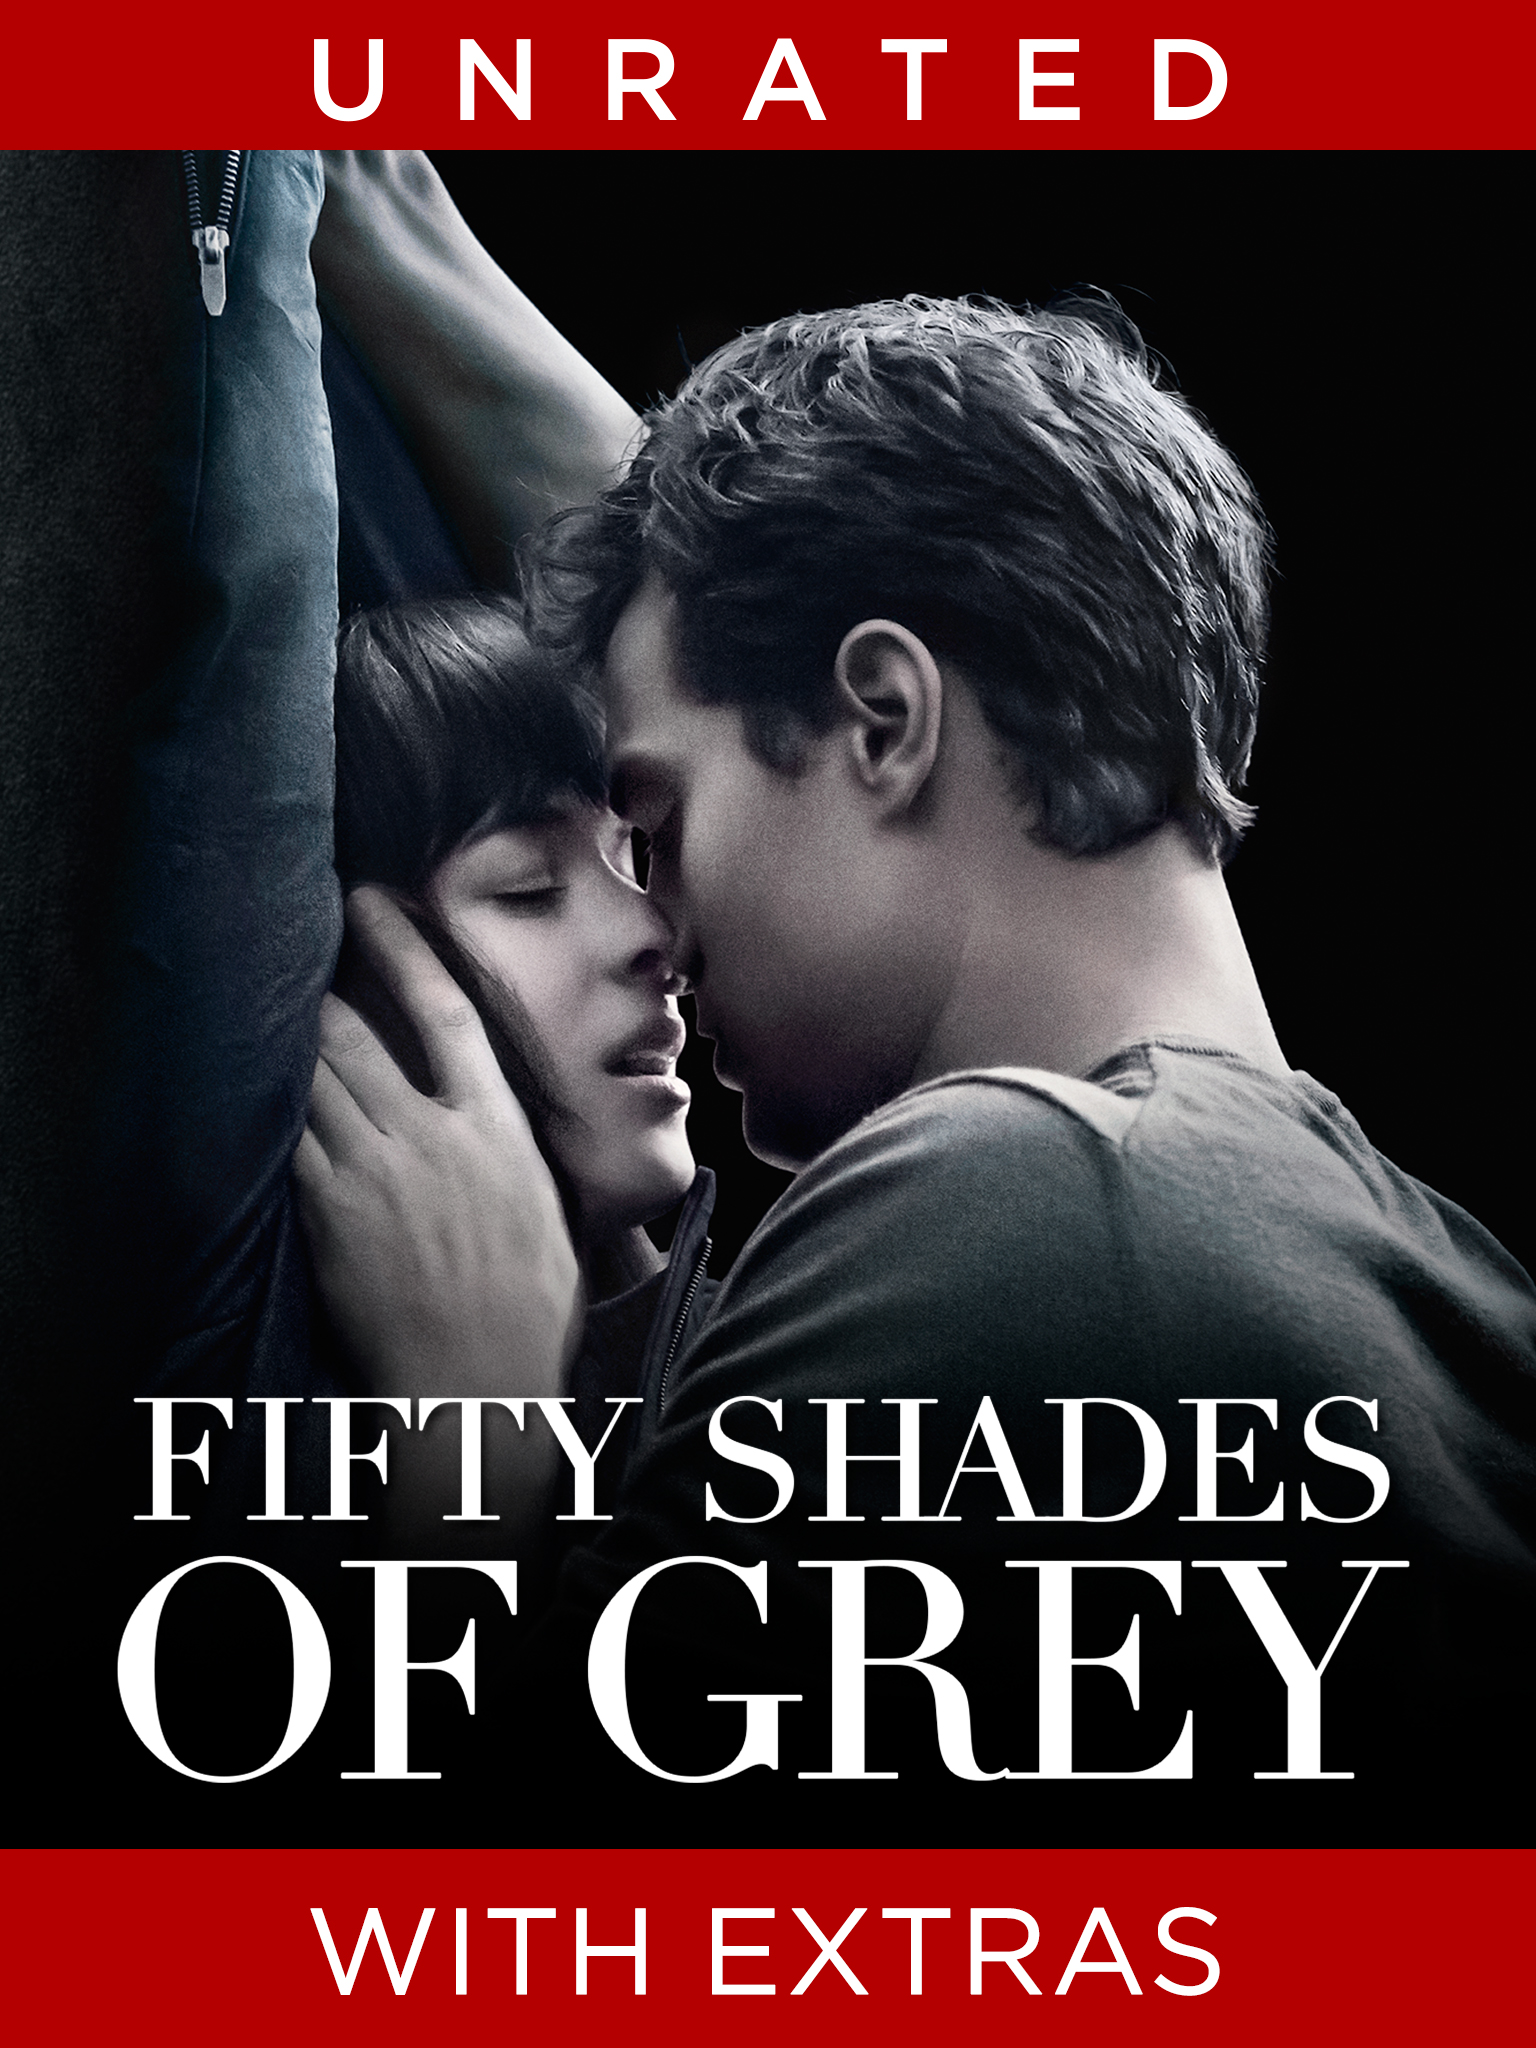 Fifty Shades of Grey (Unrated) + Bonus